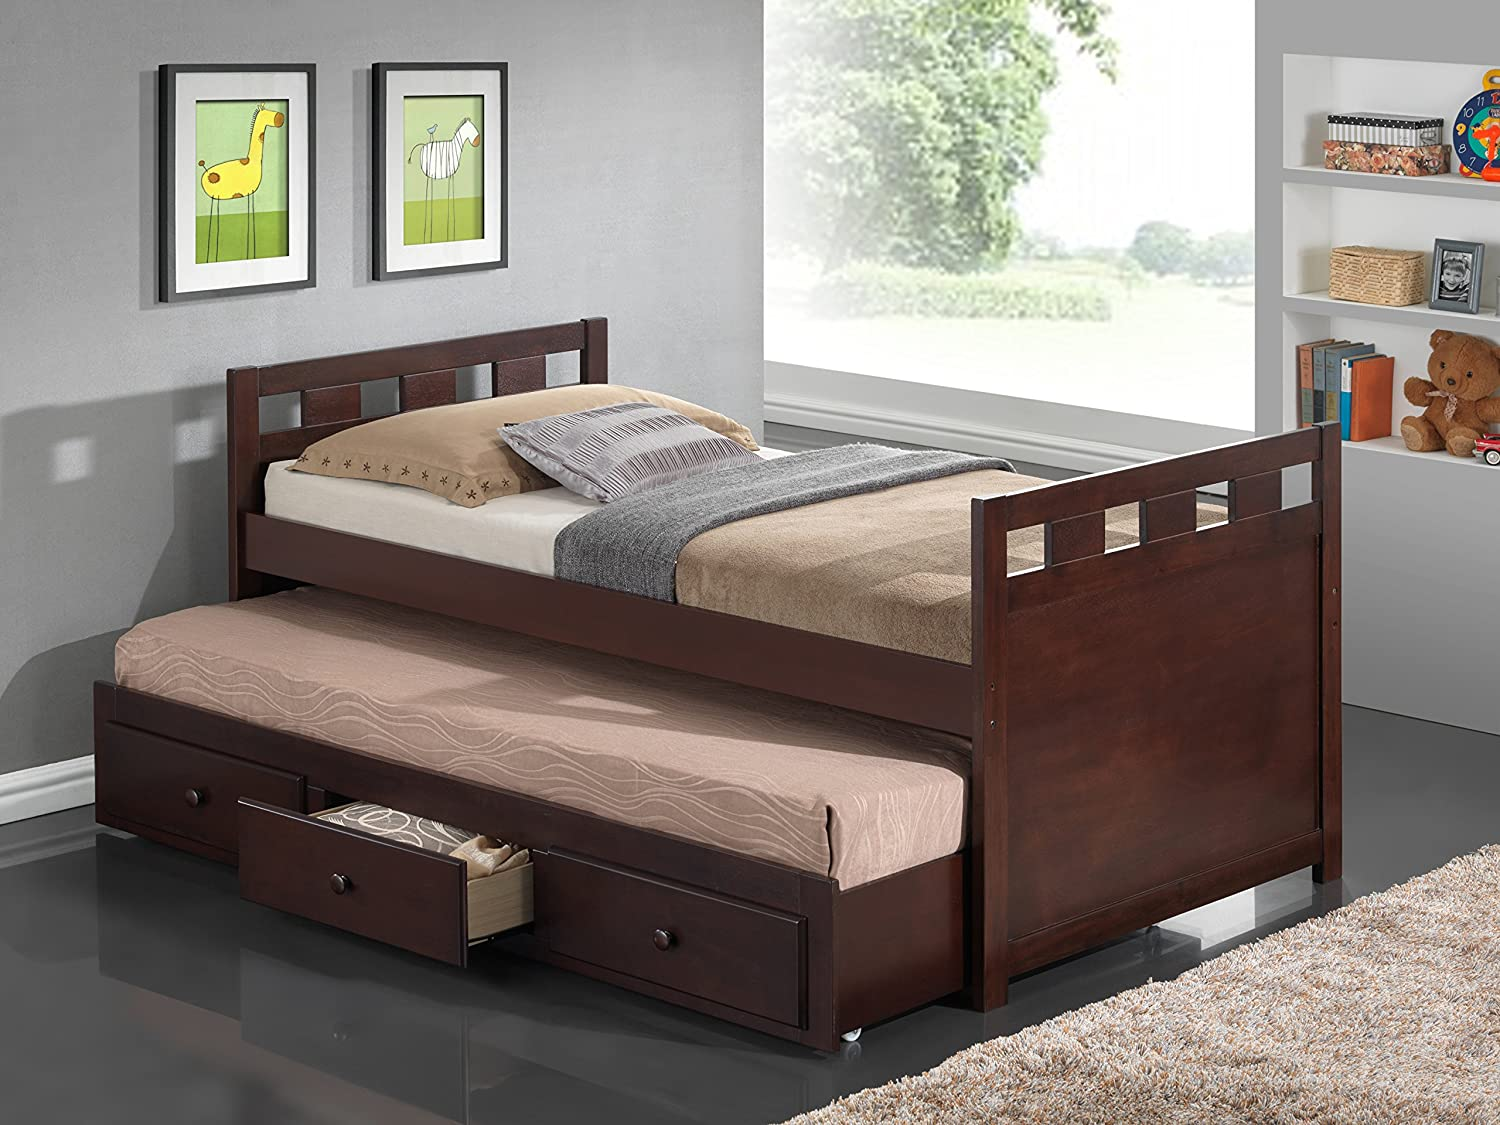 Accessories choose an option under bed drawers trundle bed none - Amazon Com Broyhill Kids Breckenridge Captain S Bed With Trundle Bed And Drawers Espresso Kitchen Dining